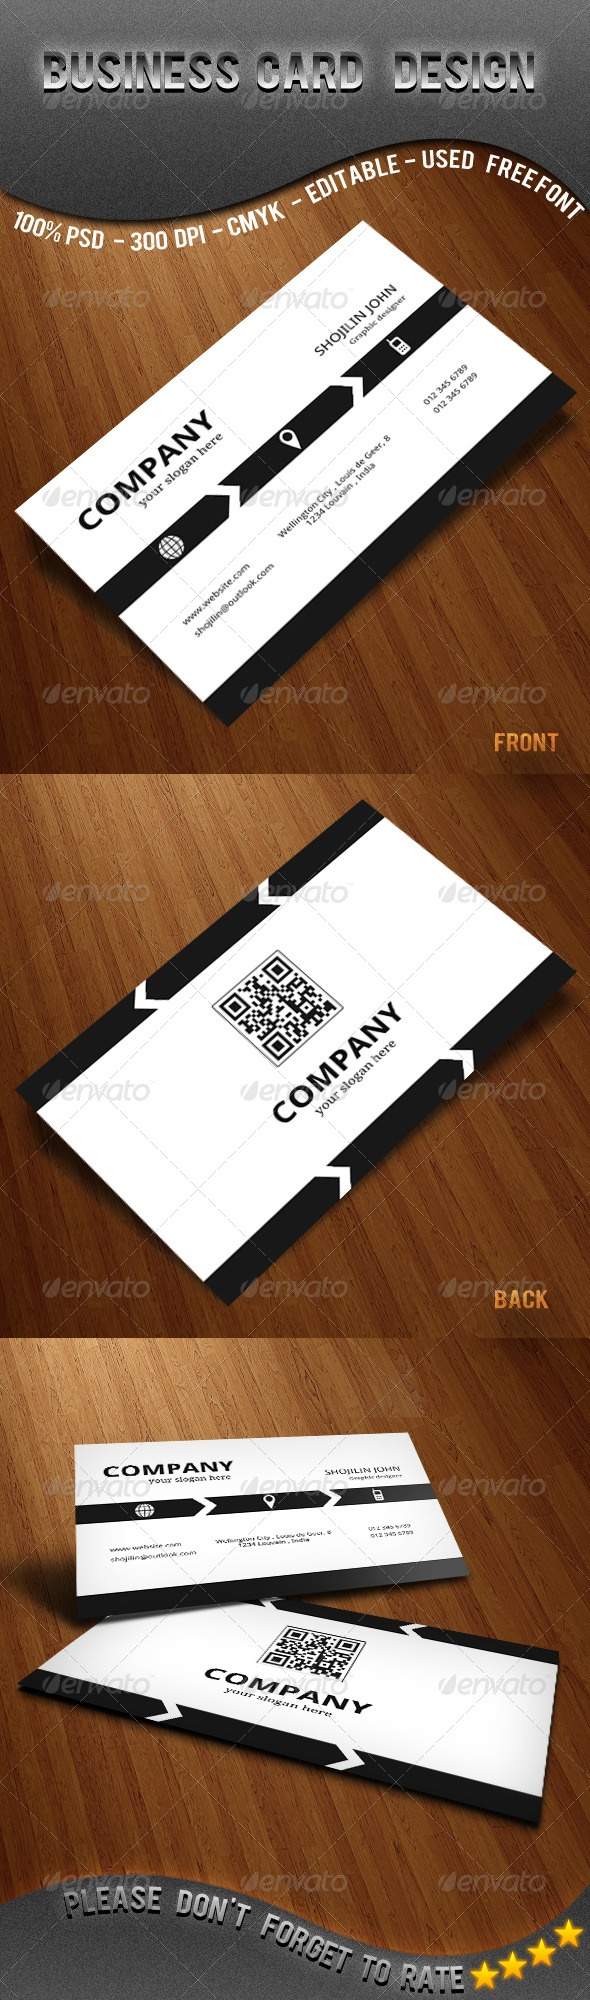 corporate business card design - #corporate #design